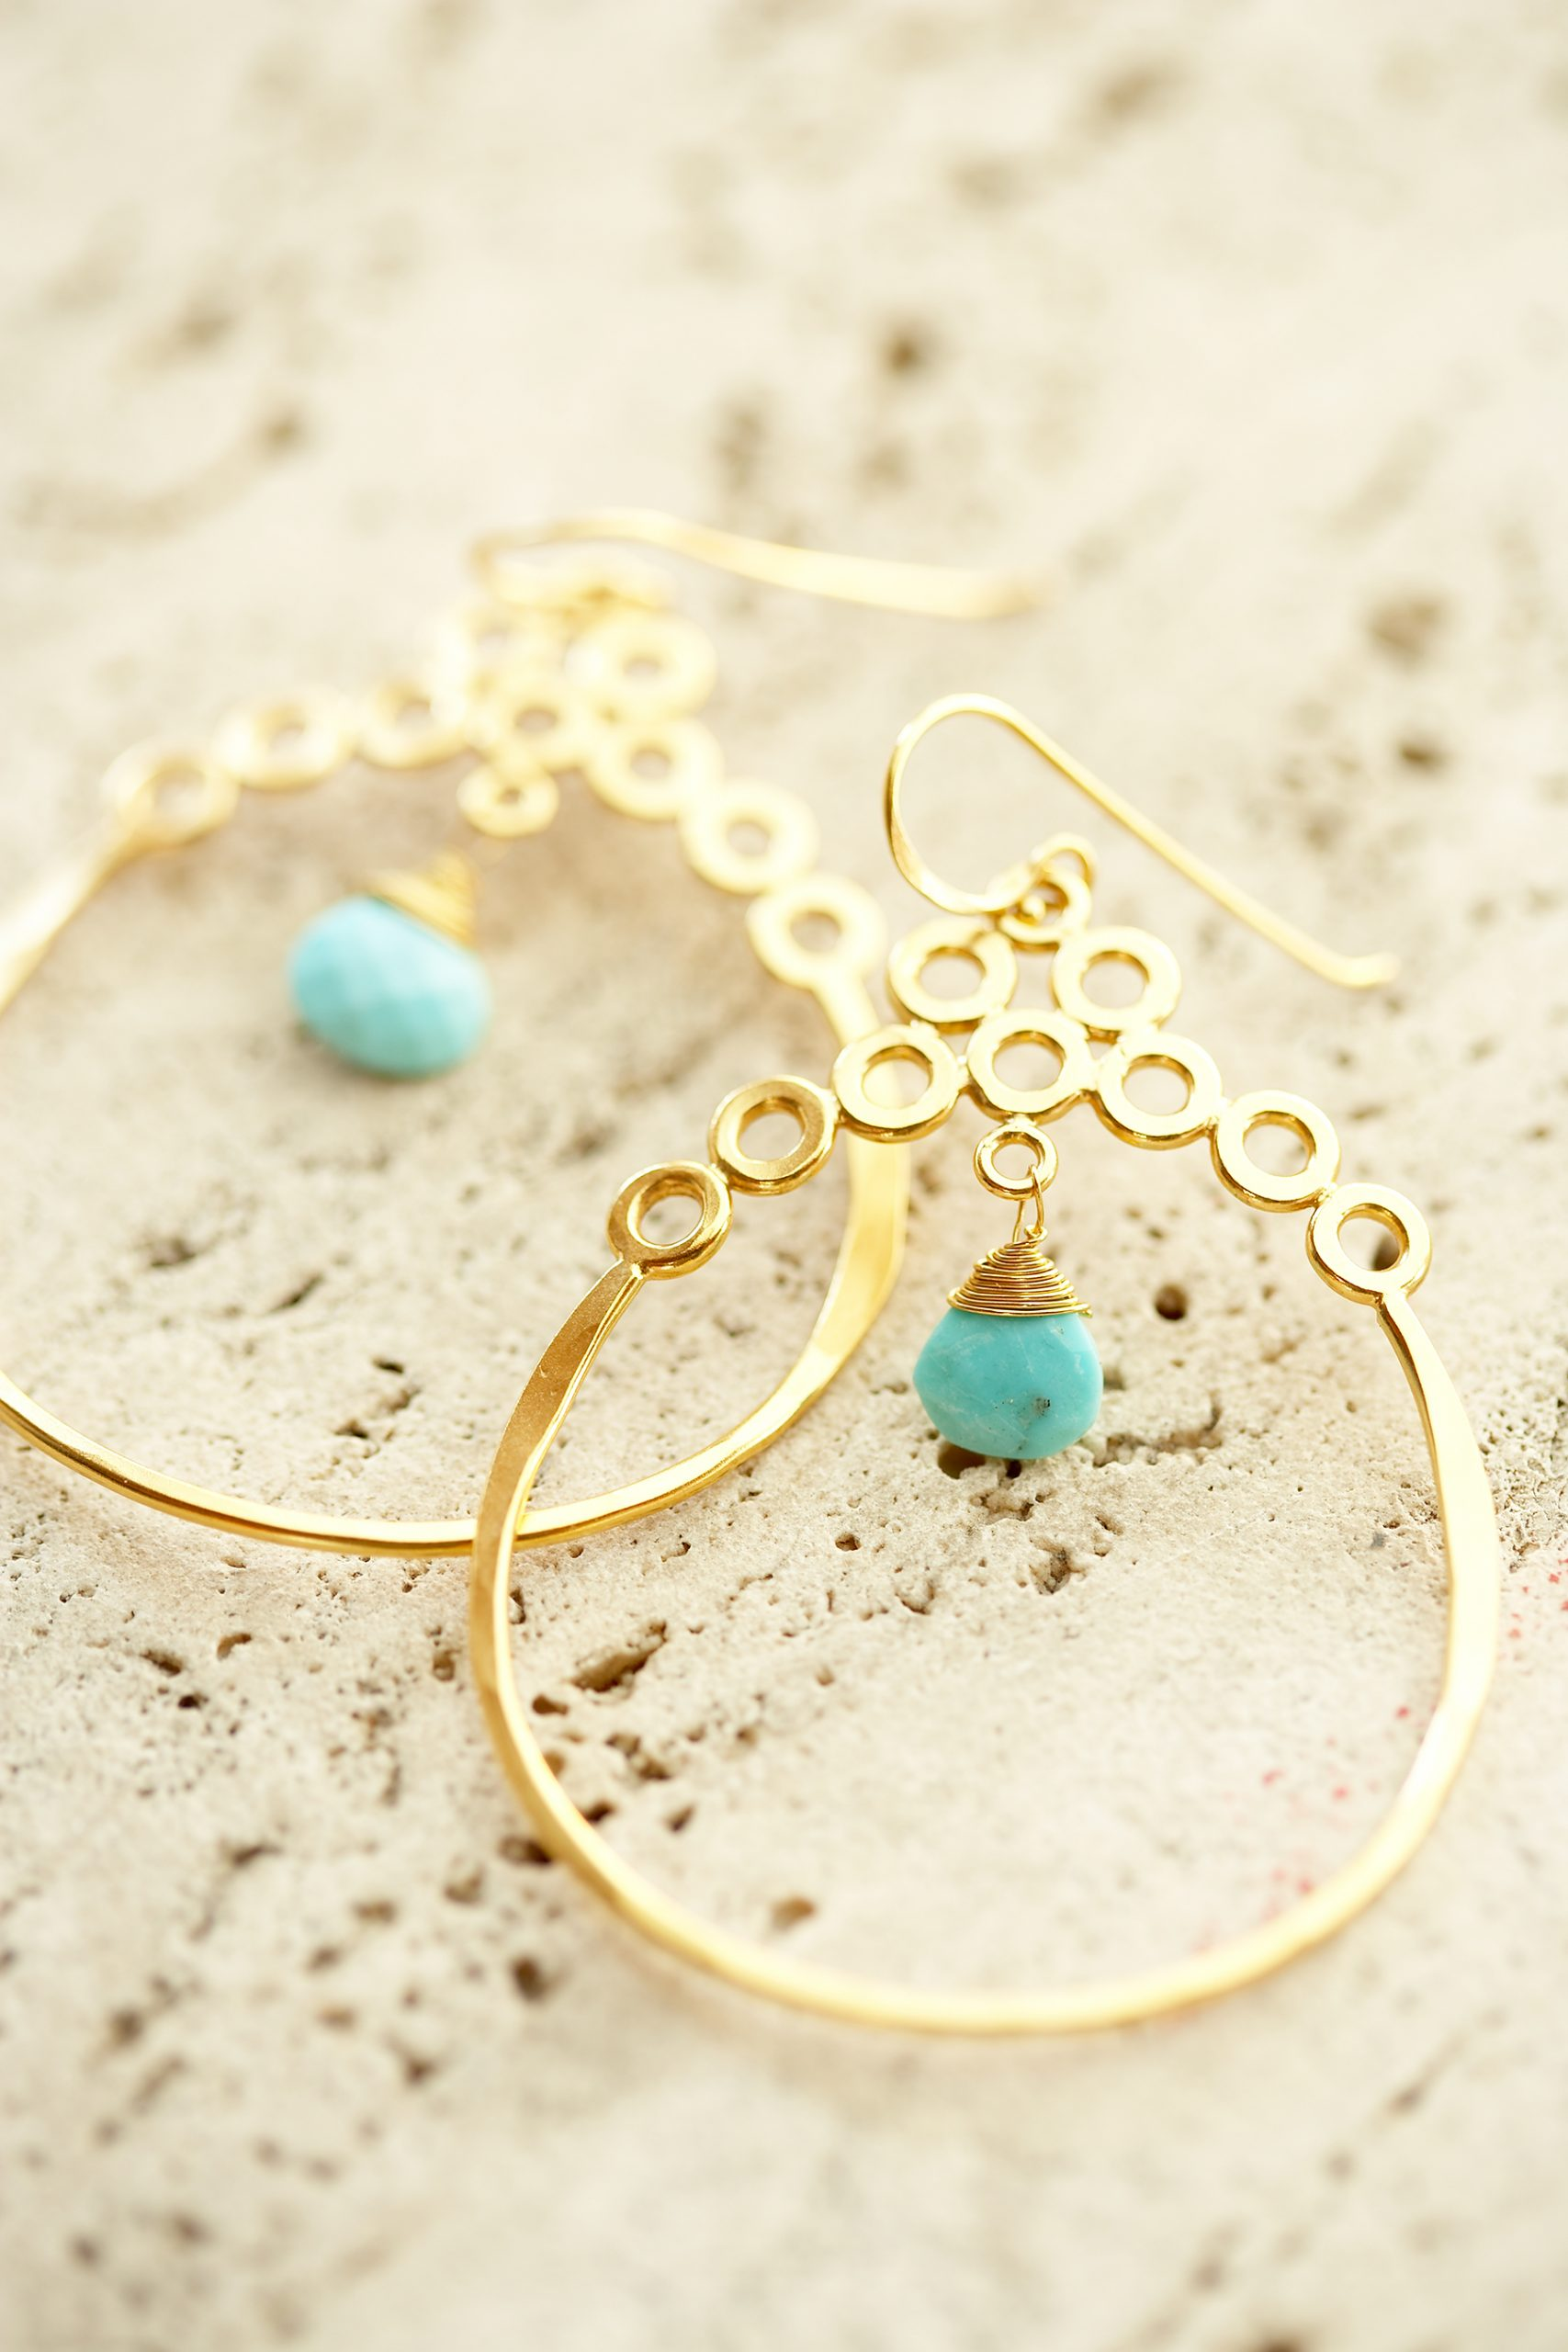 gold earring product photography scaled